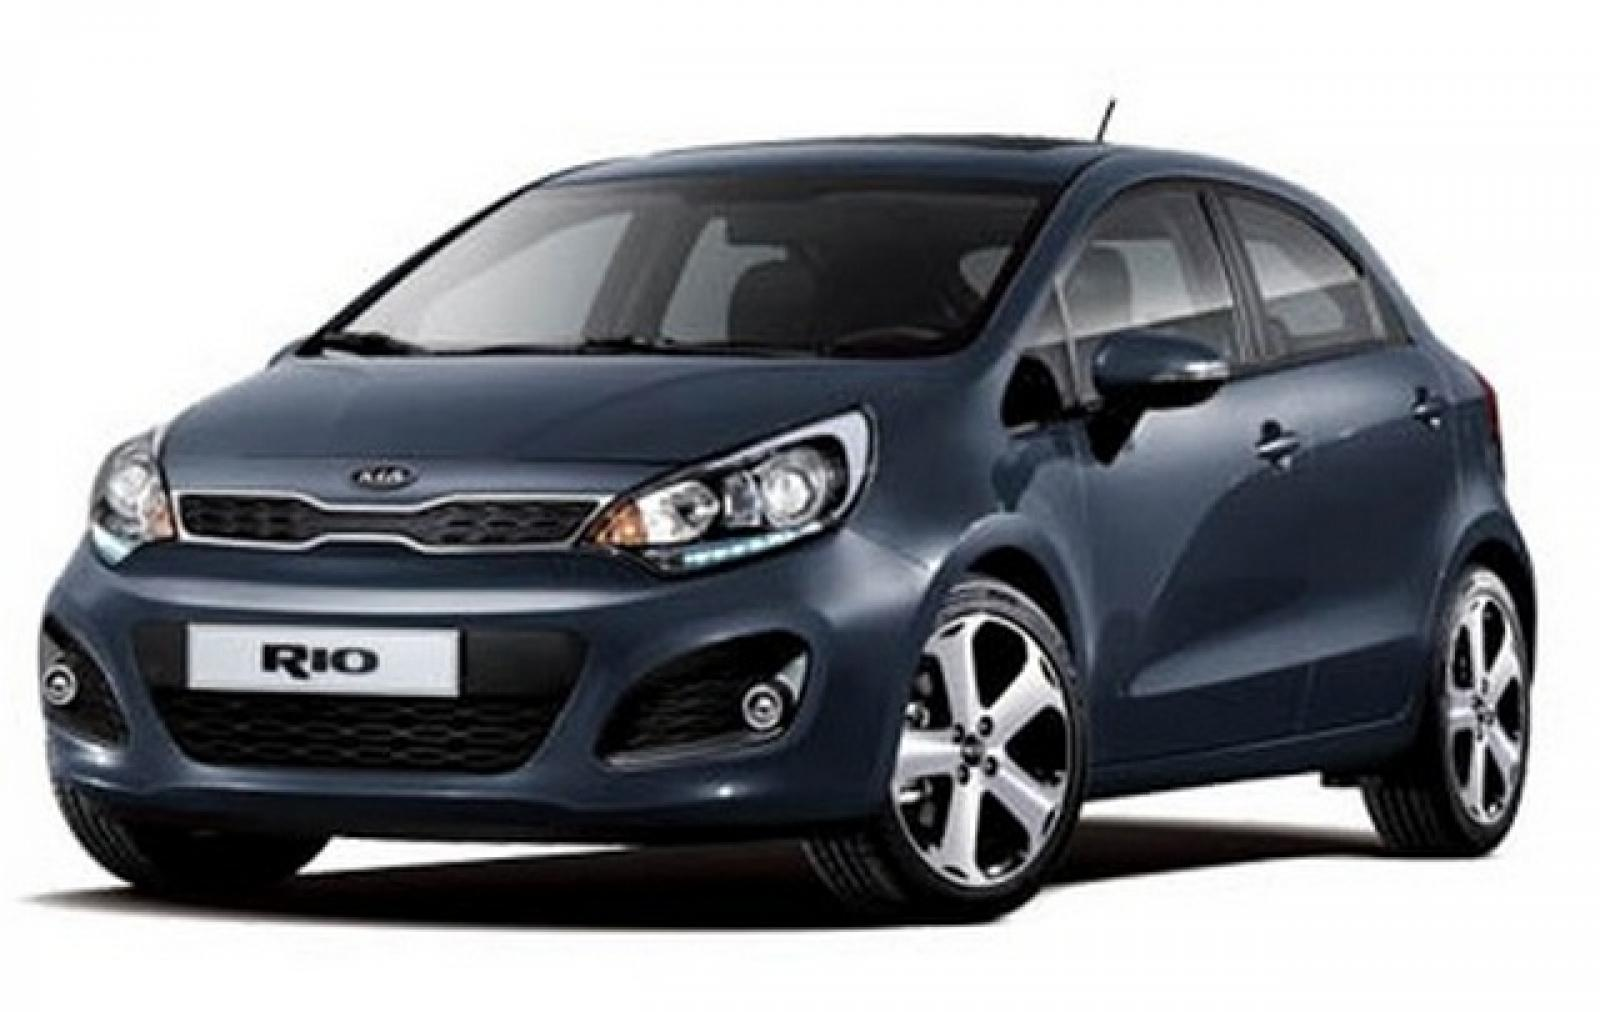 2015 kia rio information and photos zombiedrive. Black Bedroom Furniture Sets. Home Design Ideas